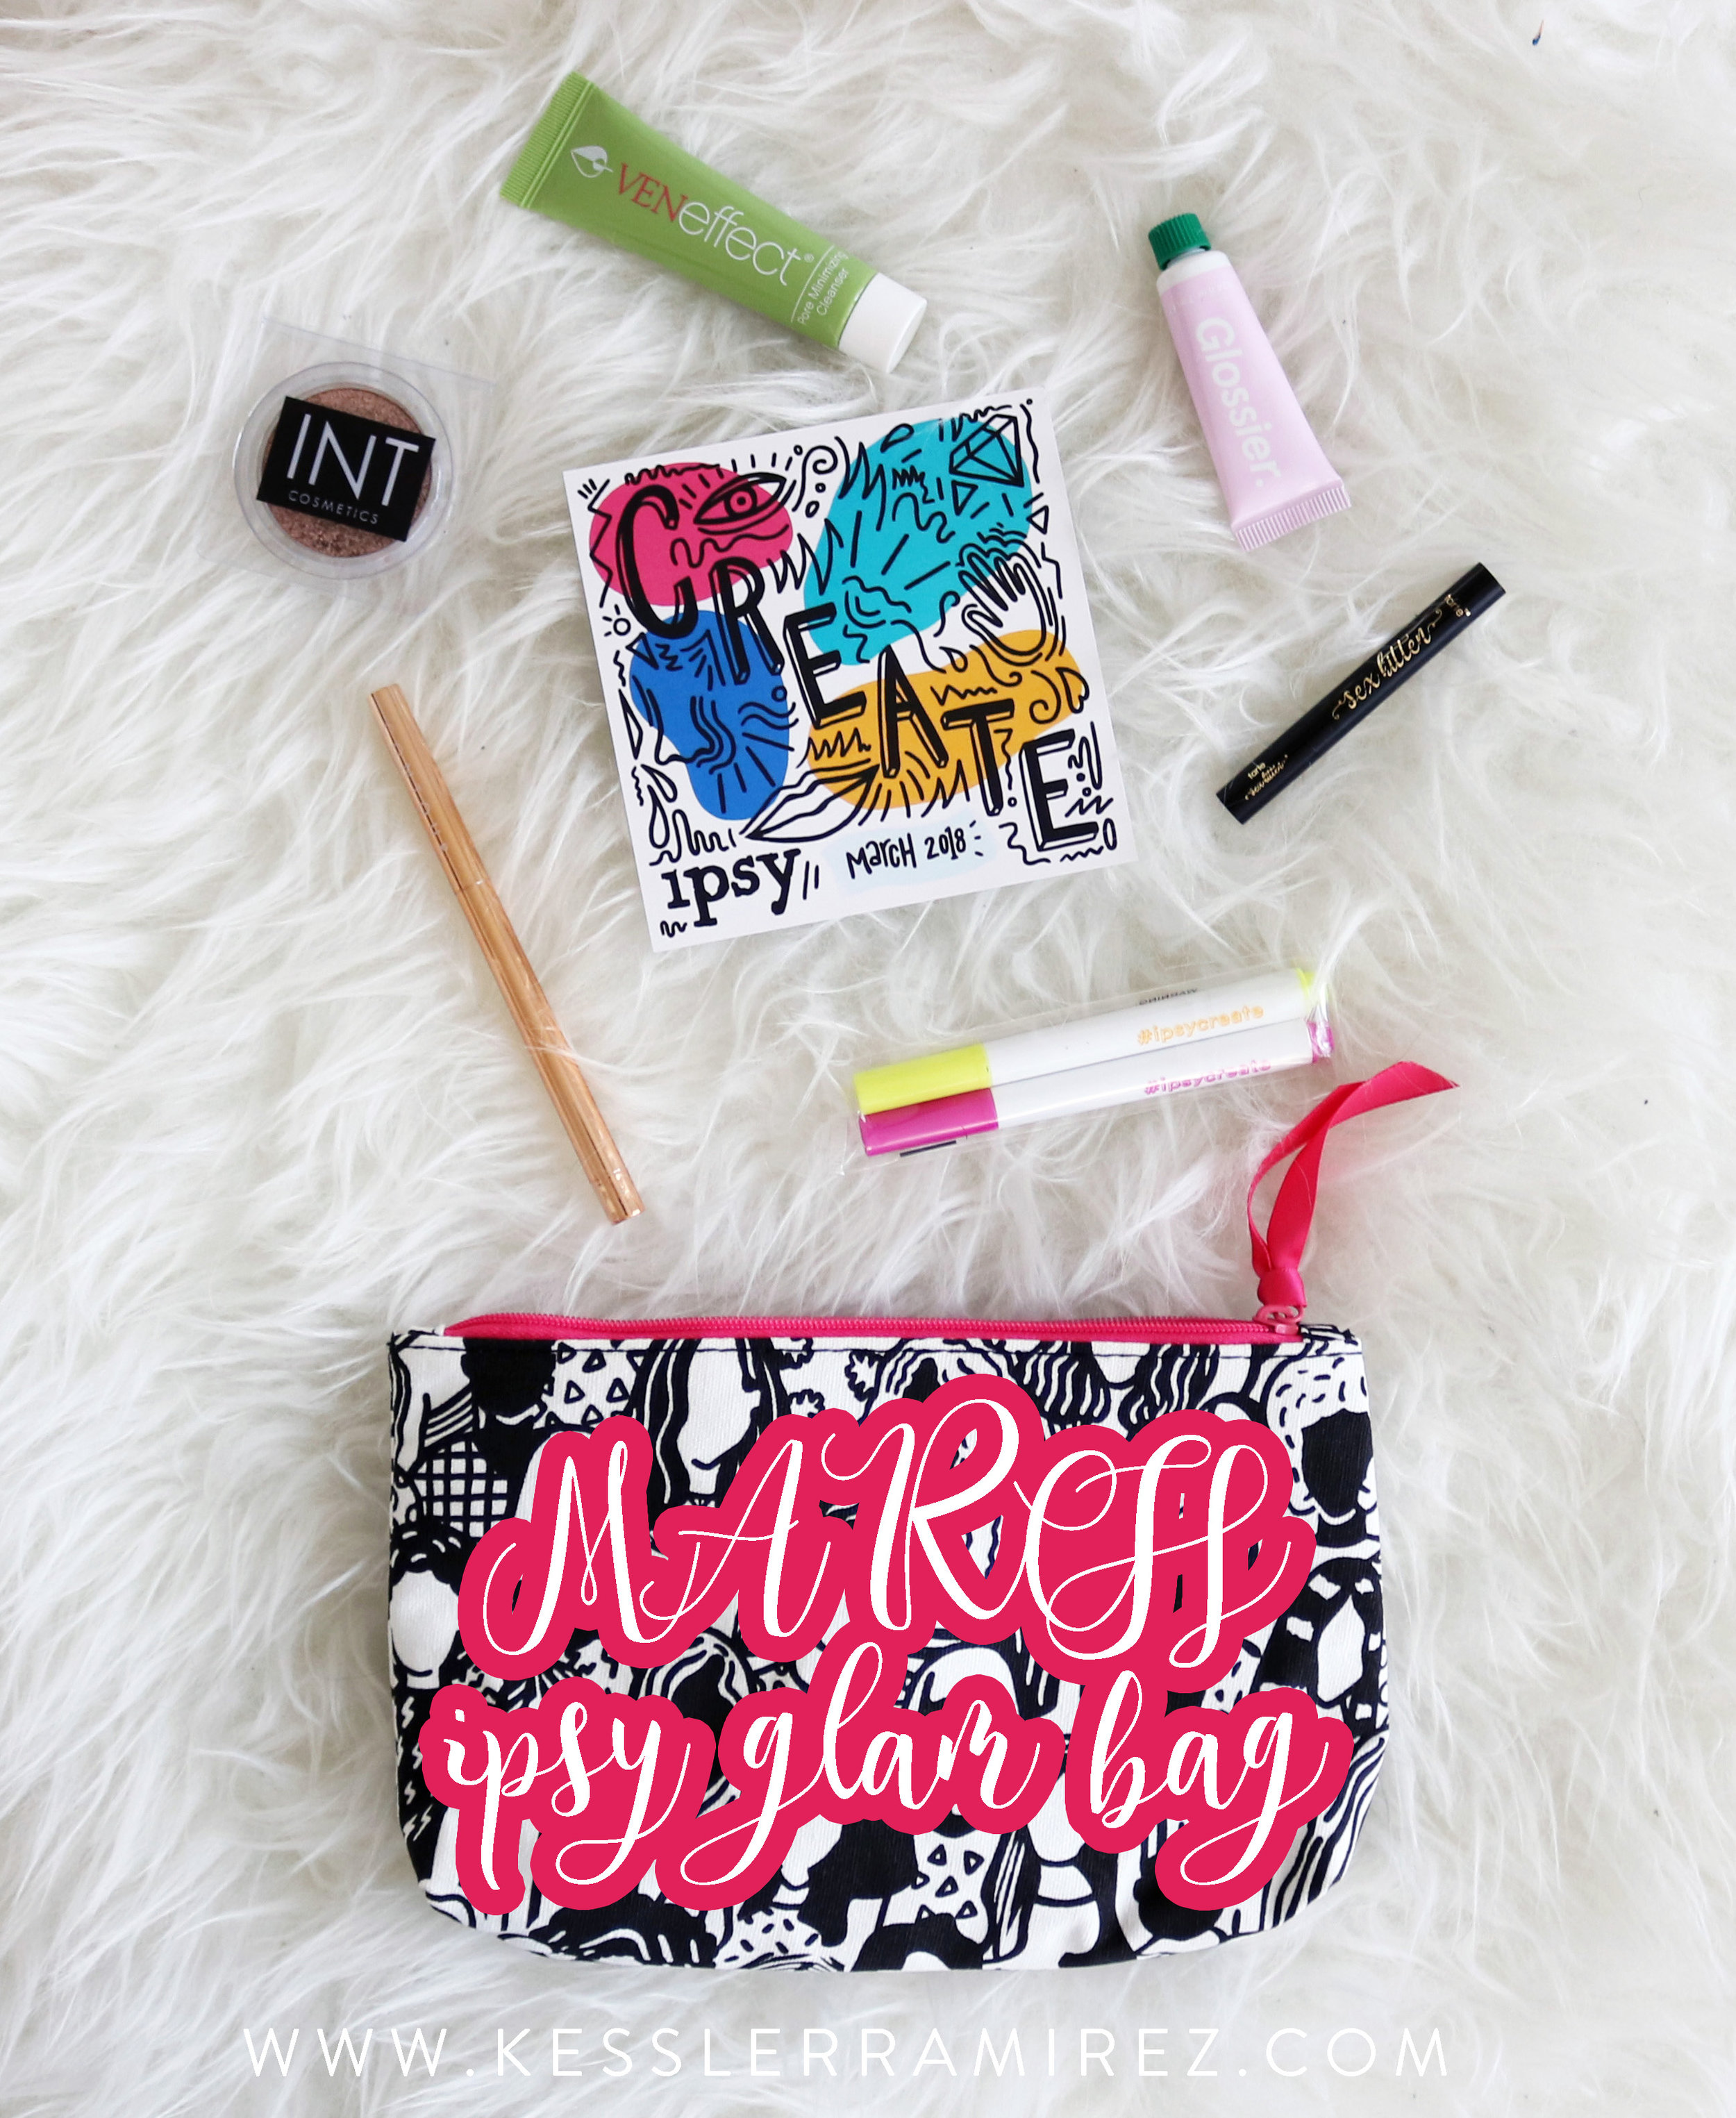 Kessler Ramirez March Ipsy